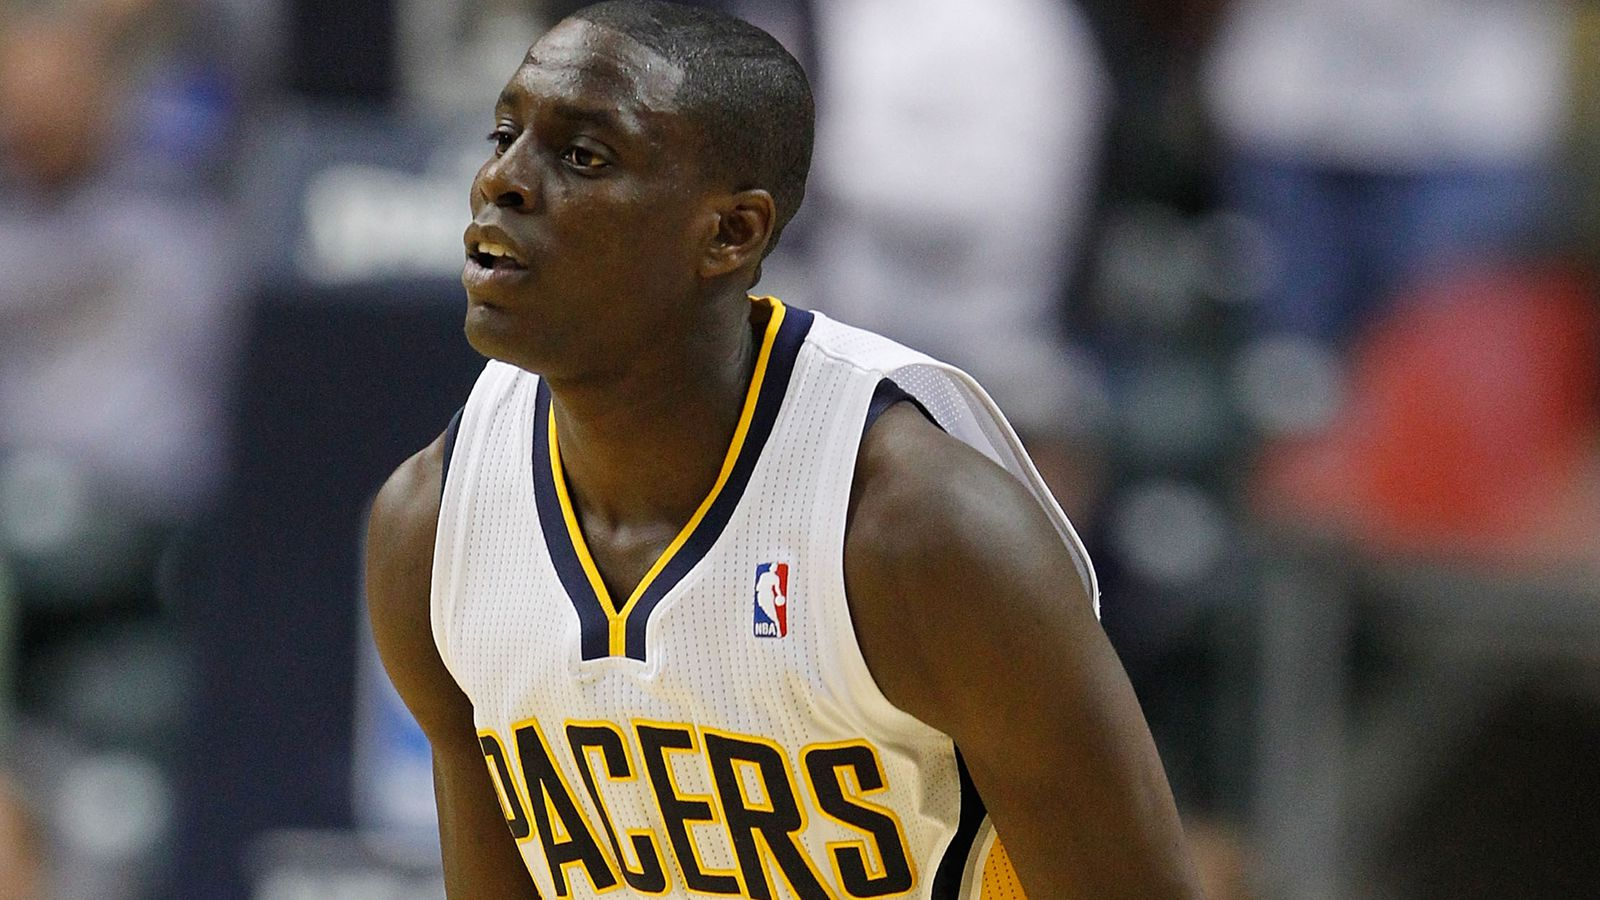 Darren Collison's team comes up short in The Basketball Tournament final - Indy Cornrows